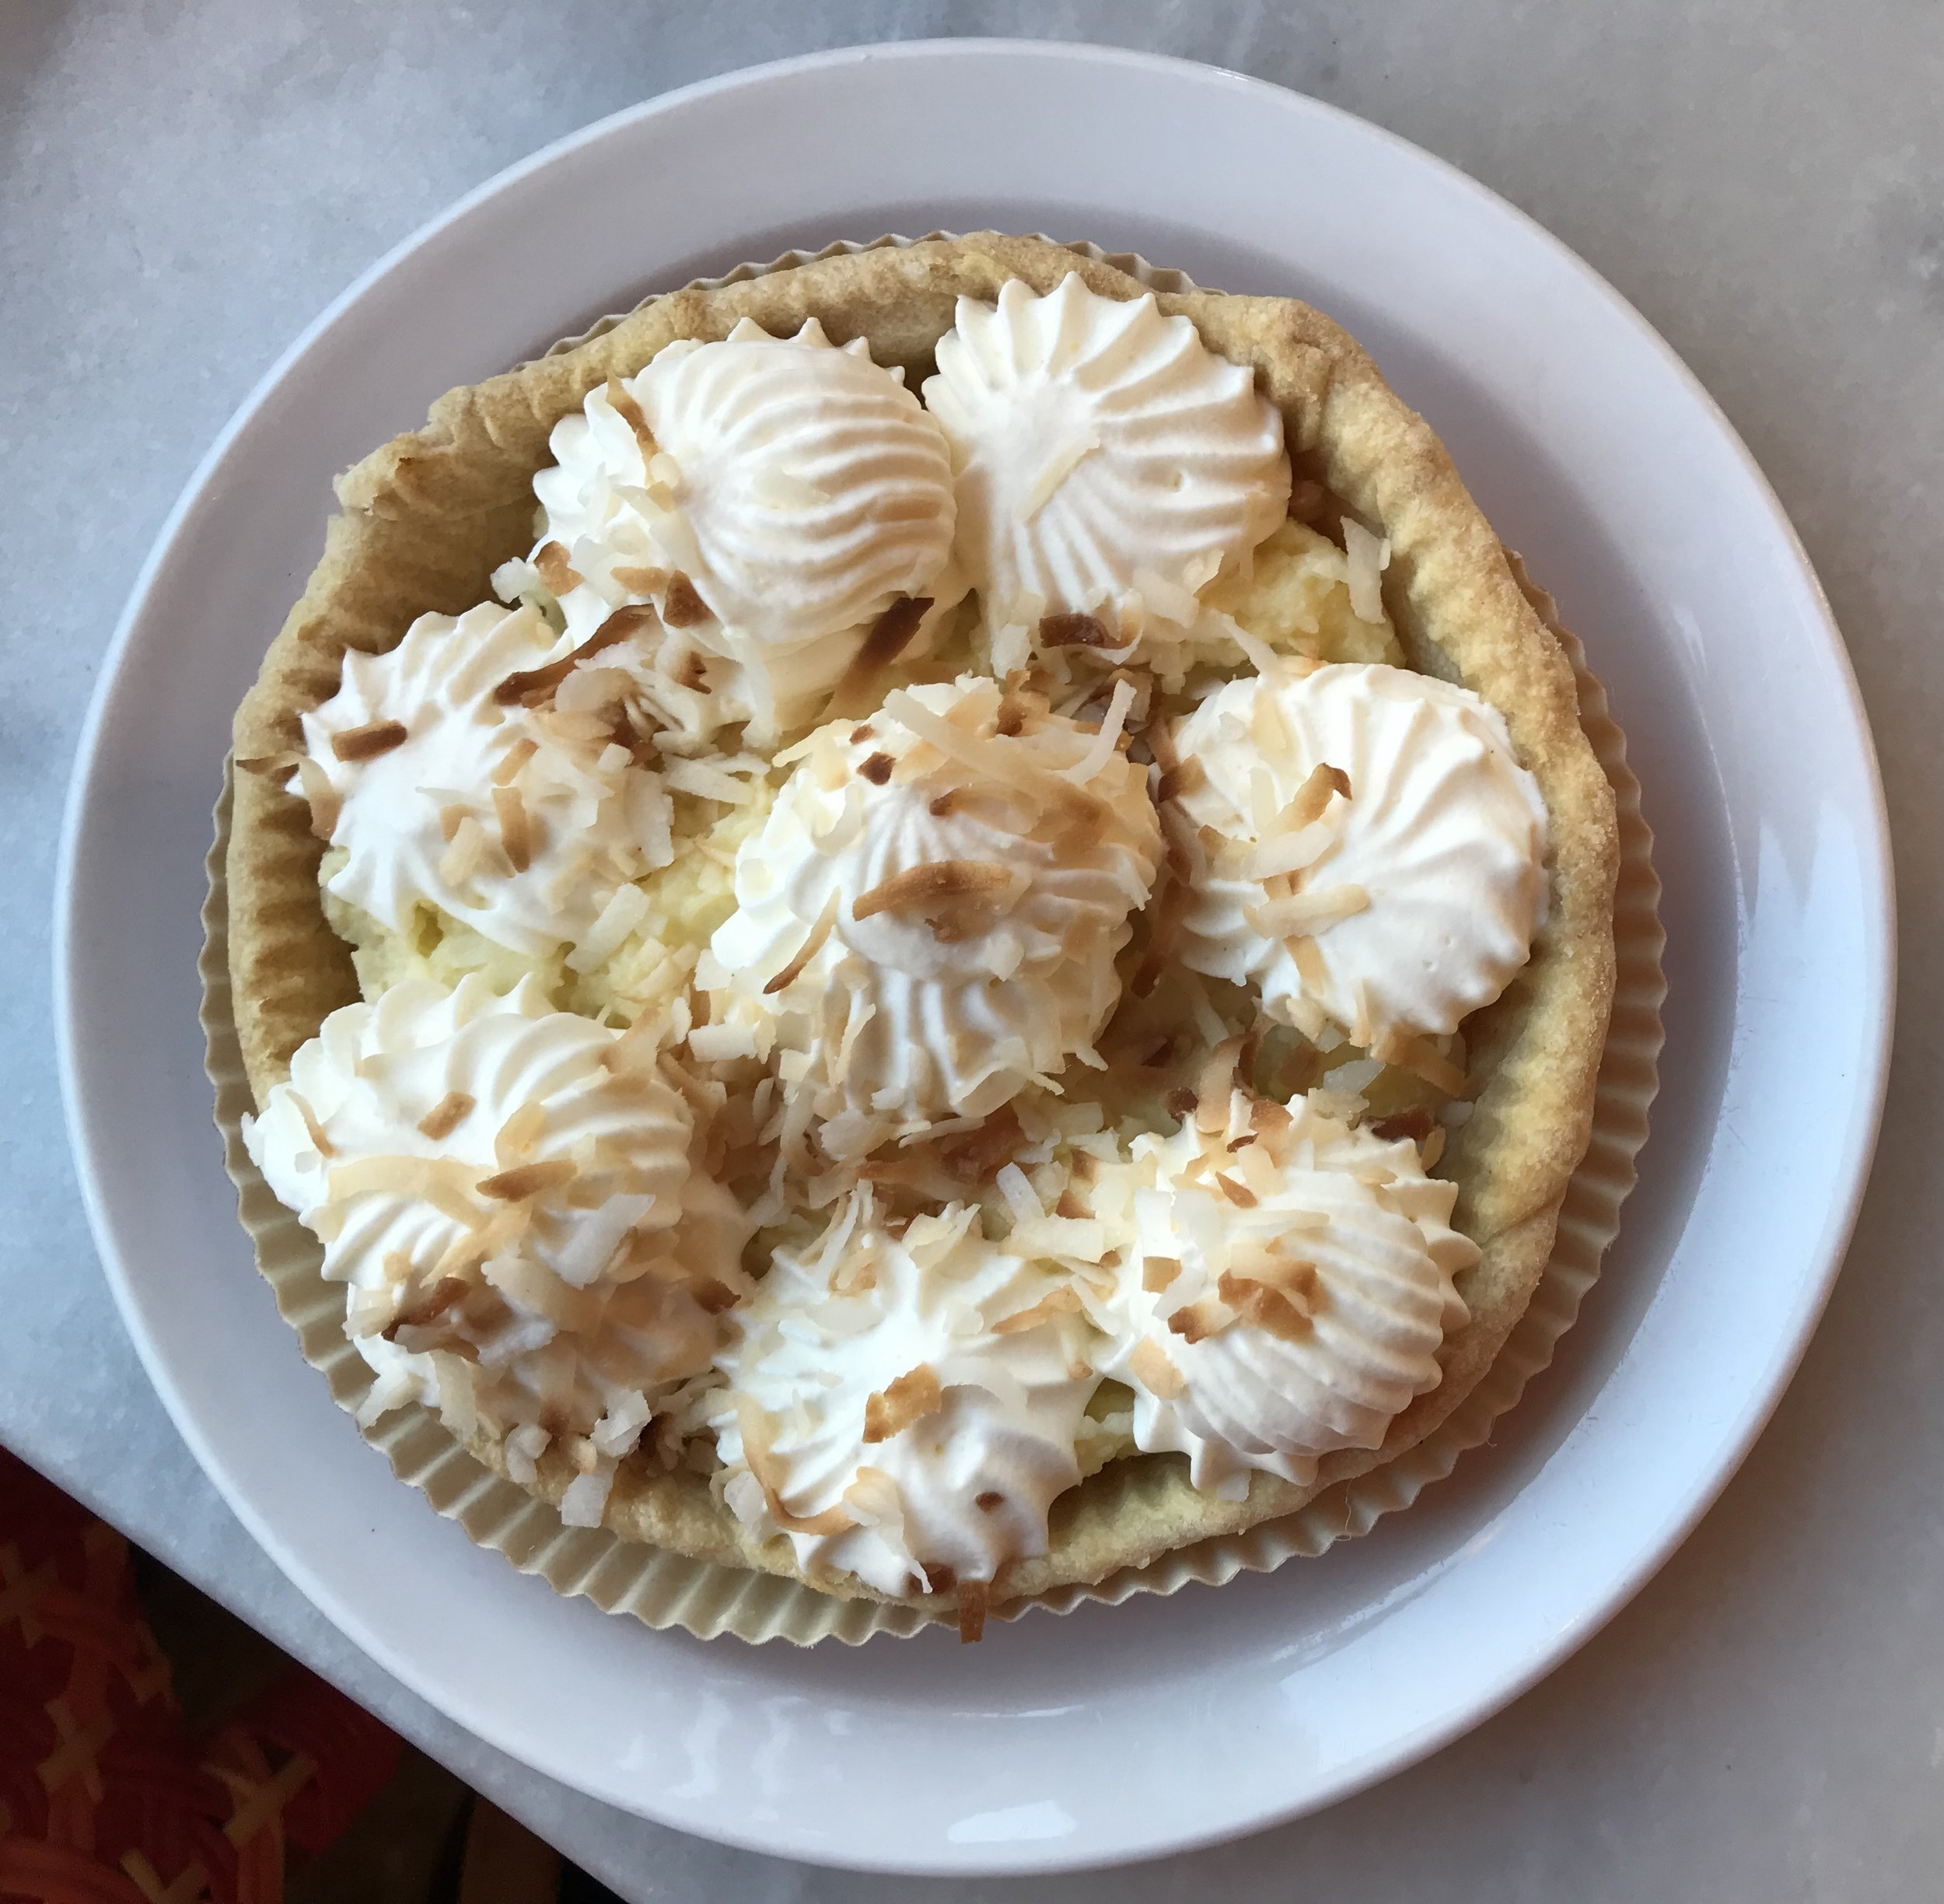 coconut cream tart.jpg